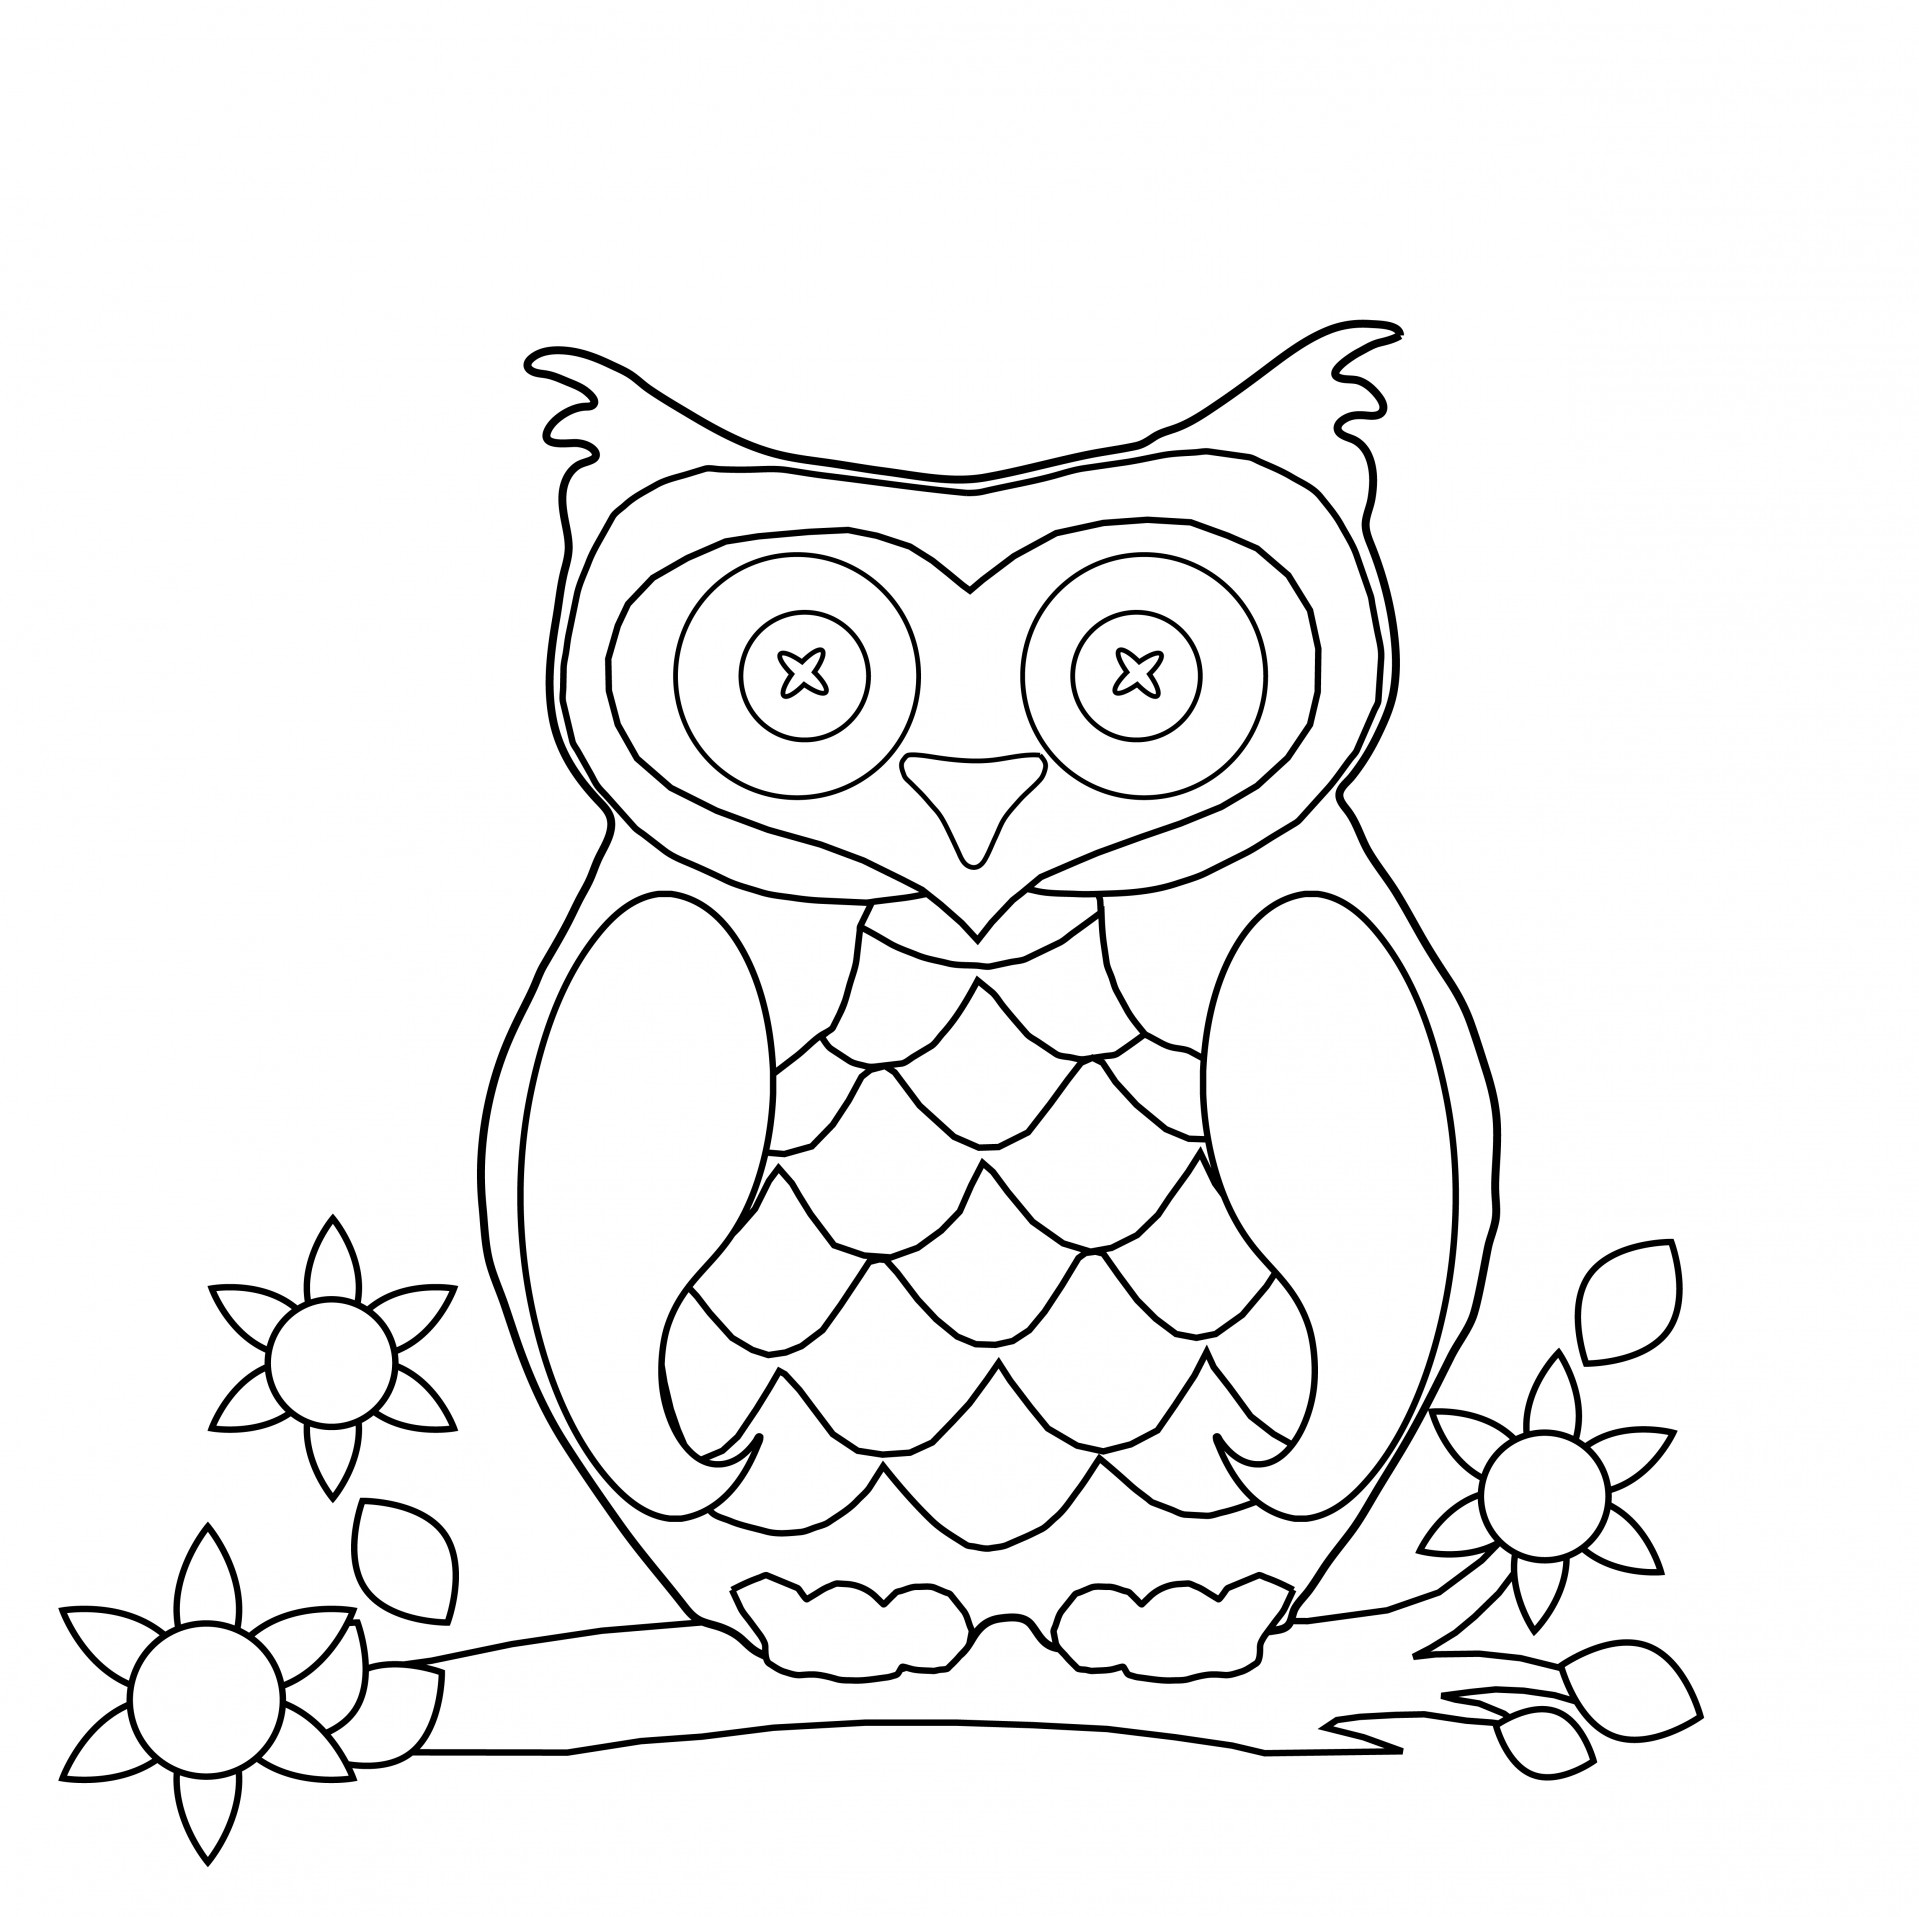 printable cute owl coloring pages coloring pages ideas - Cute Owl Coloring Pages Girls